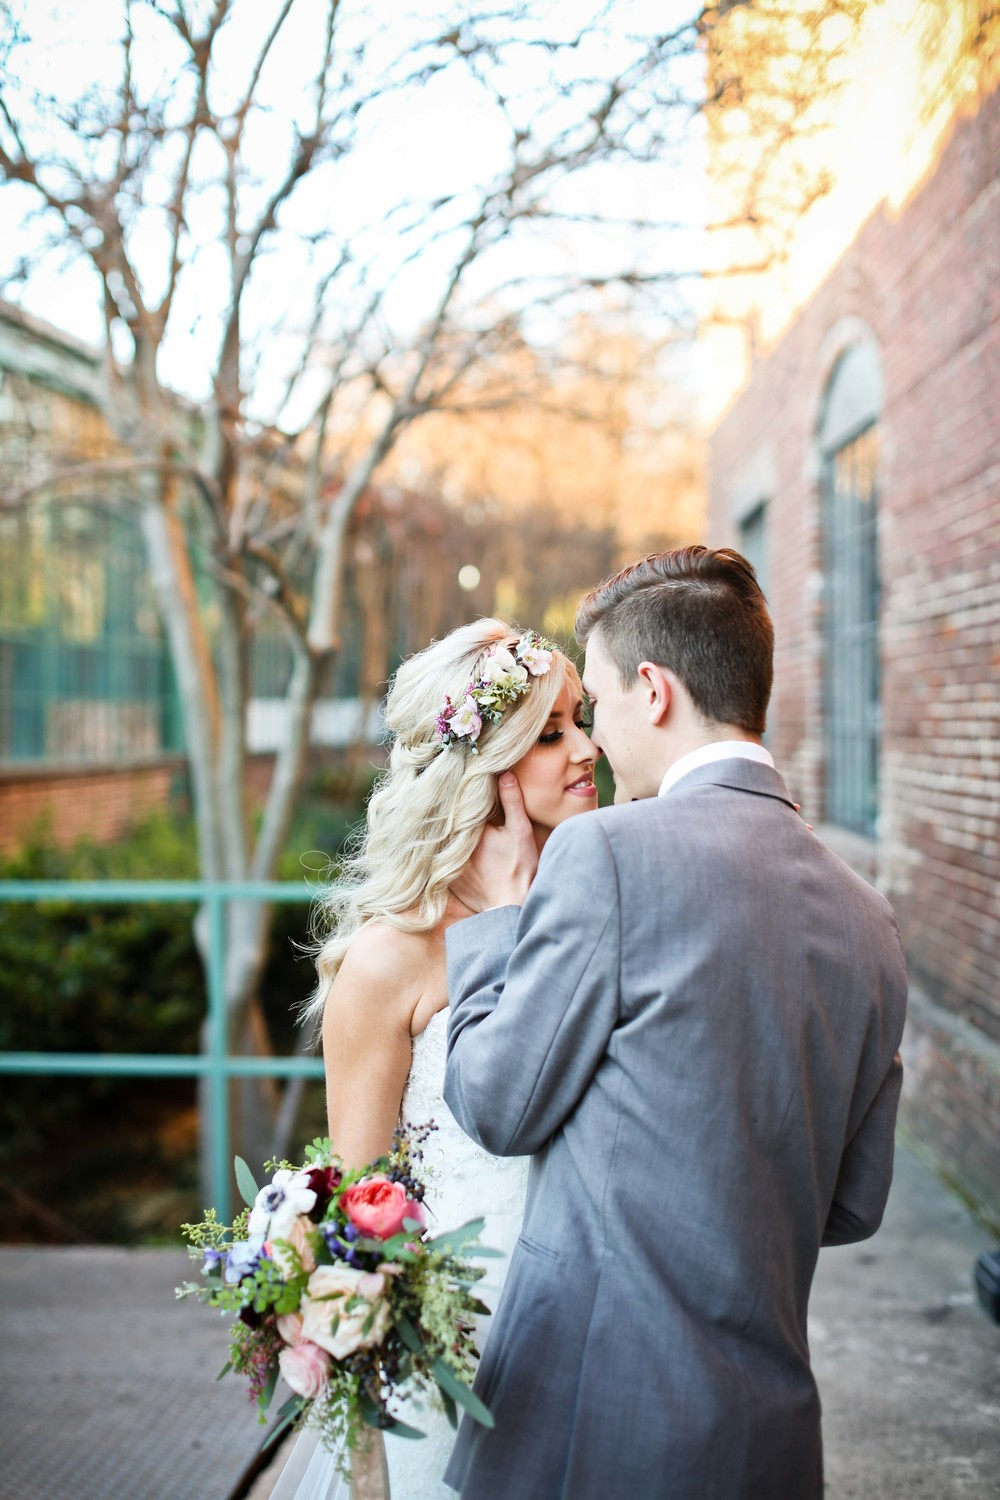 Romantic Elopement in Atlanta // Southeast Floral Design